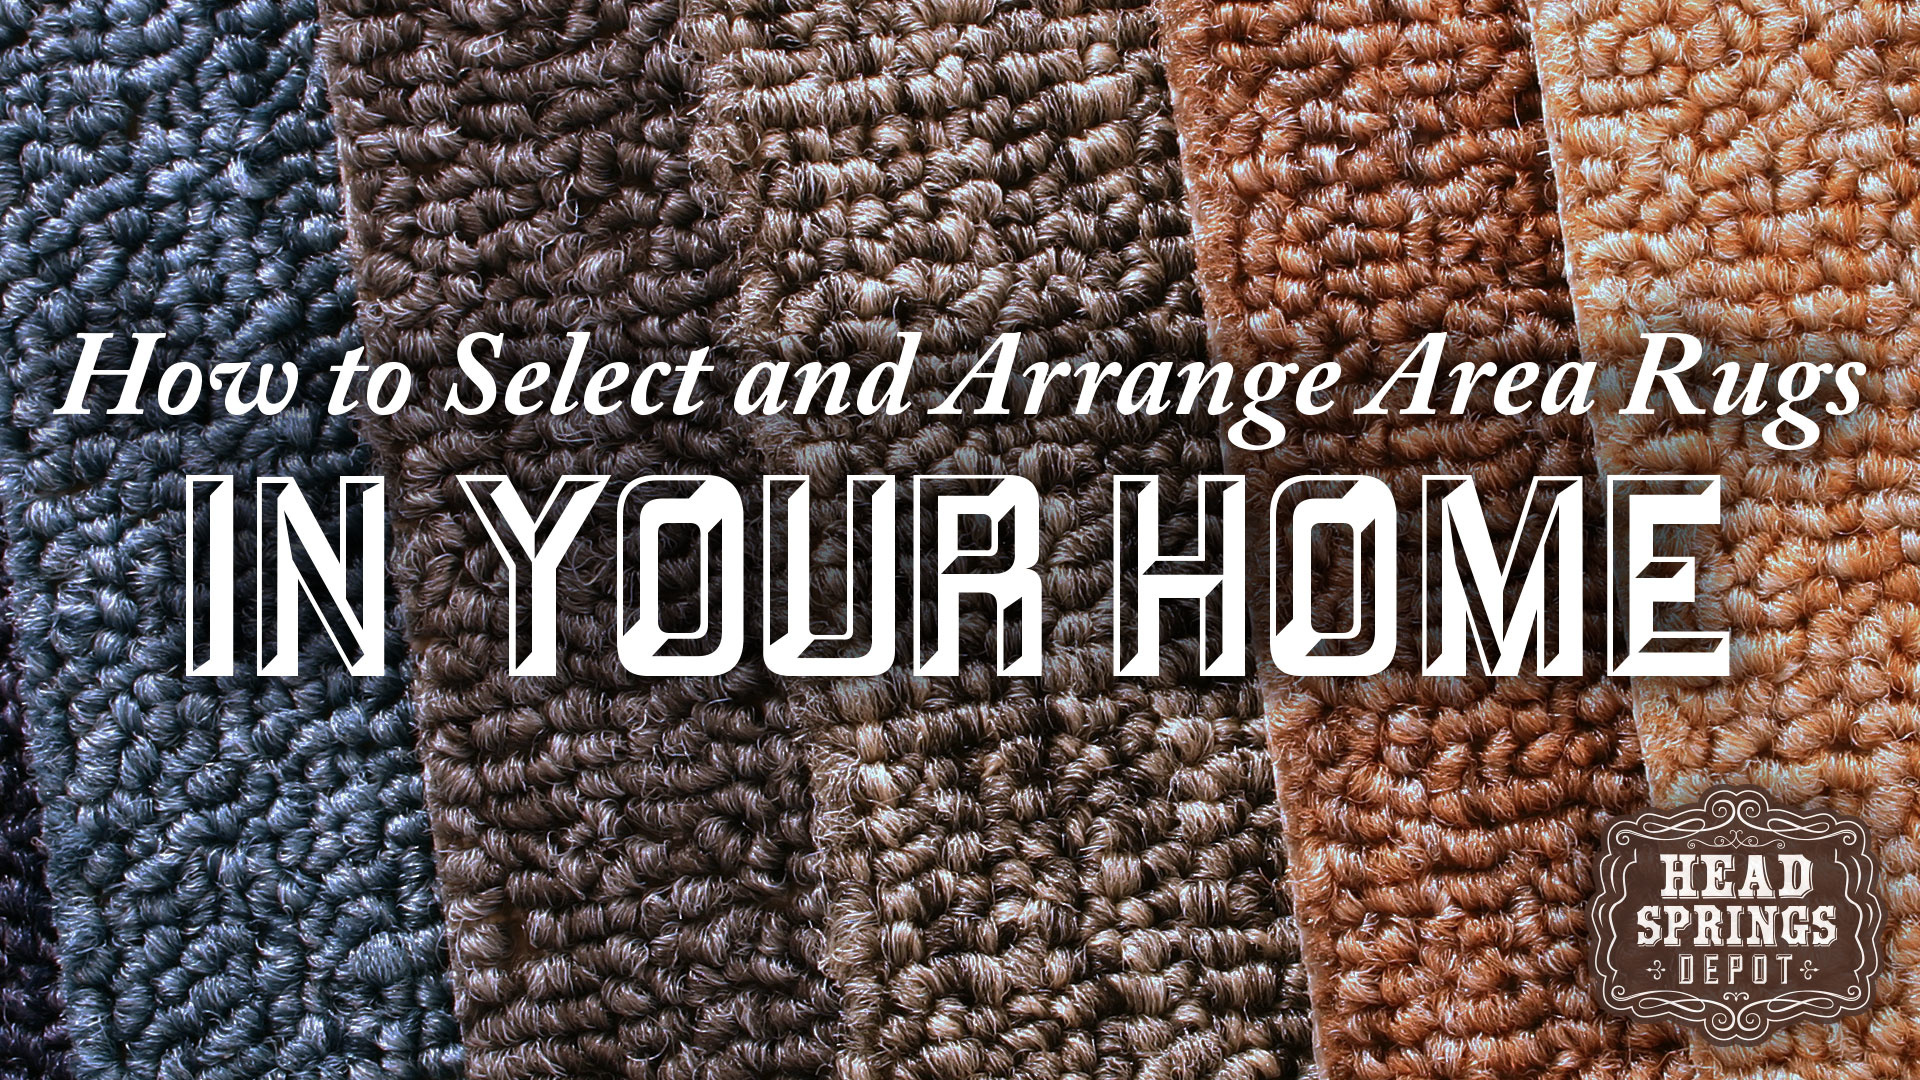 How to Select and Arrange Area Rugs in Your Home